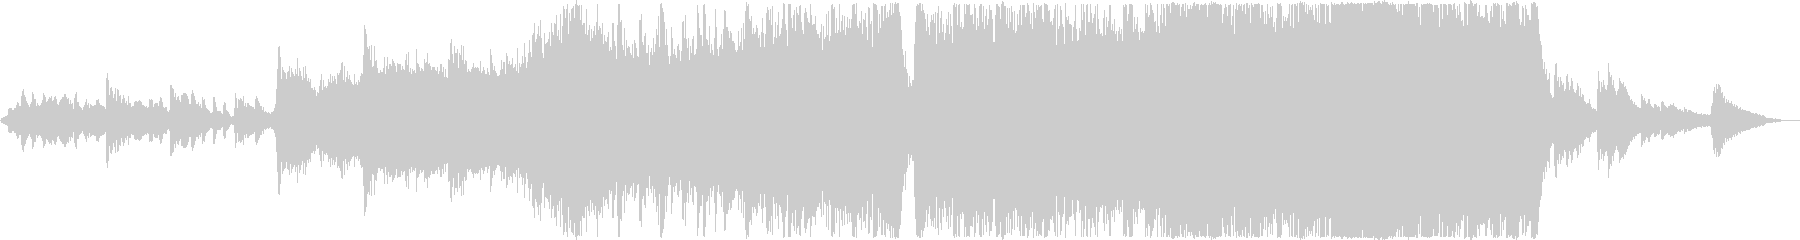 Epic Cinematic's unreproduced waveform